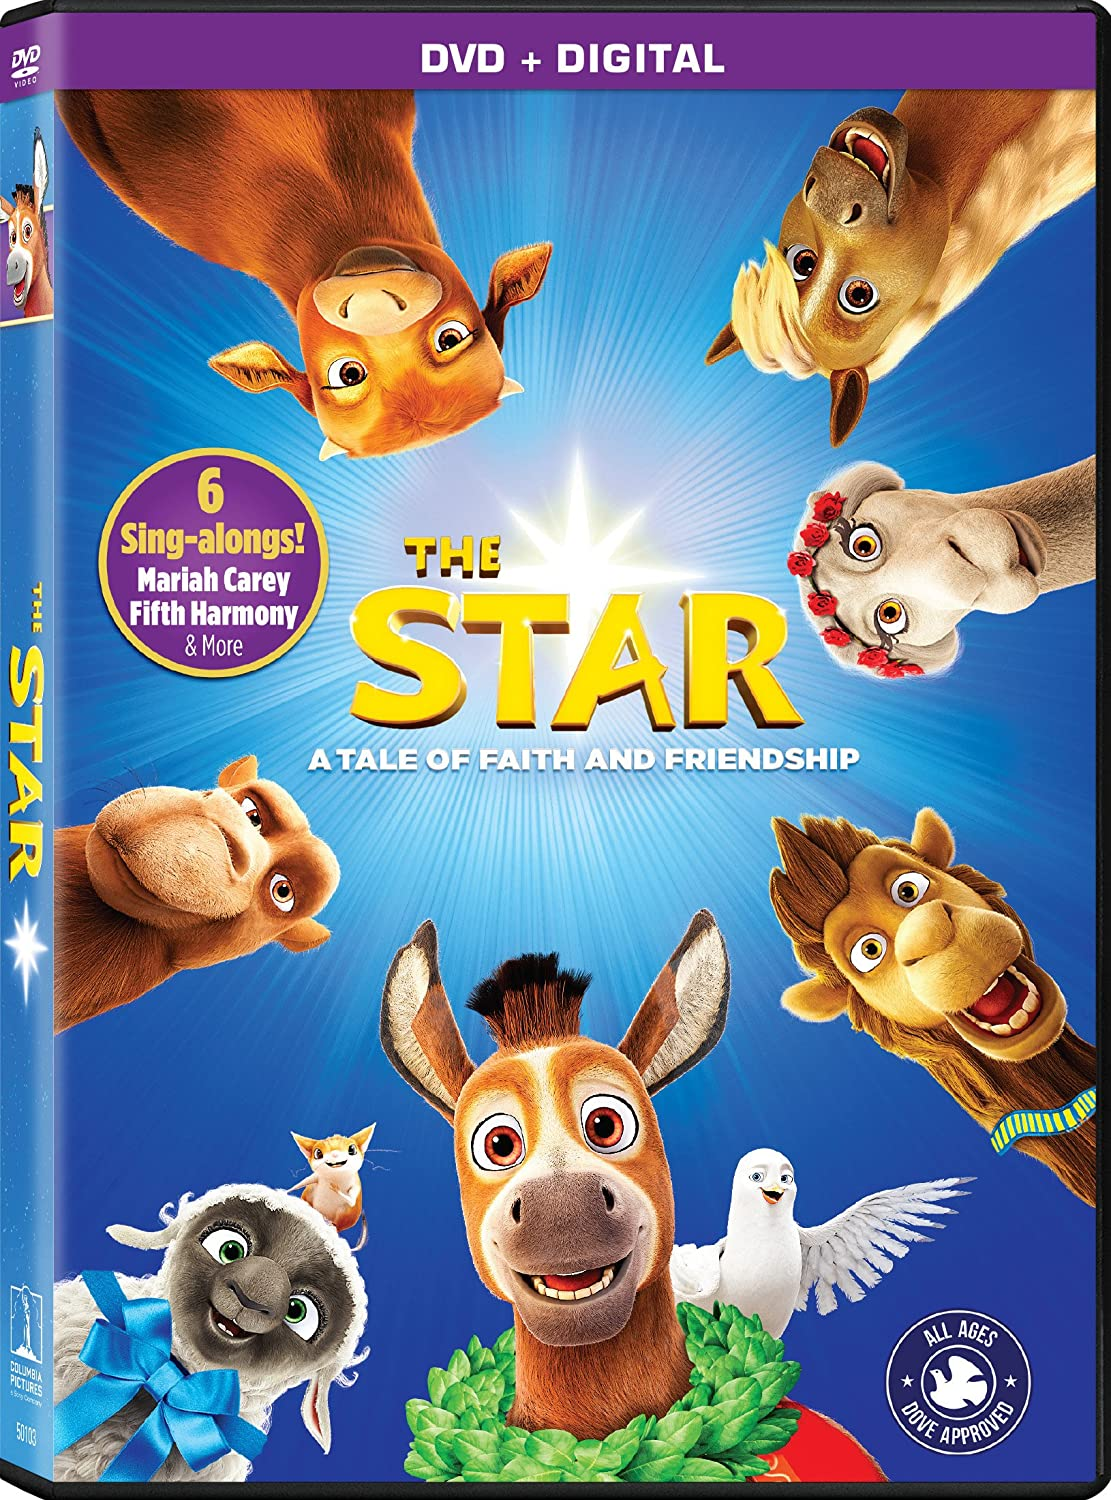 Click to see the DVD for The Star on Amazon